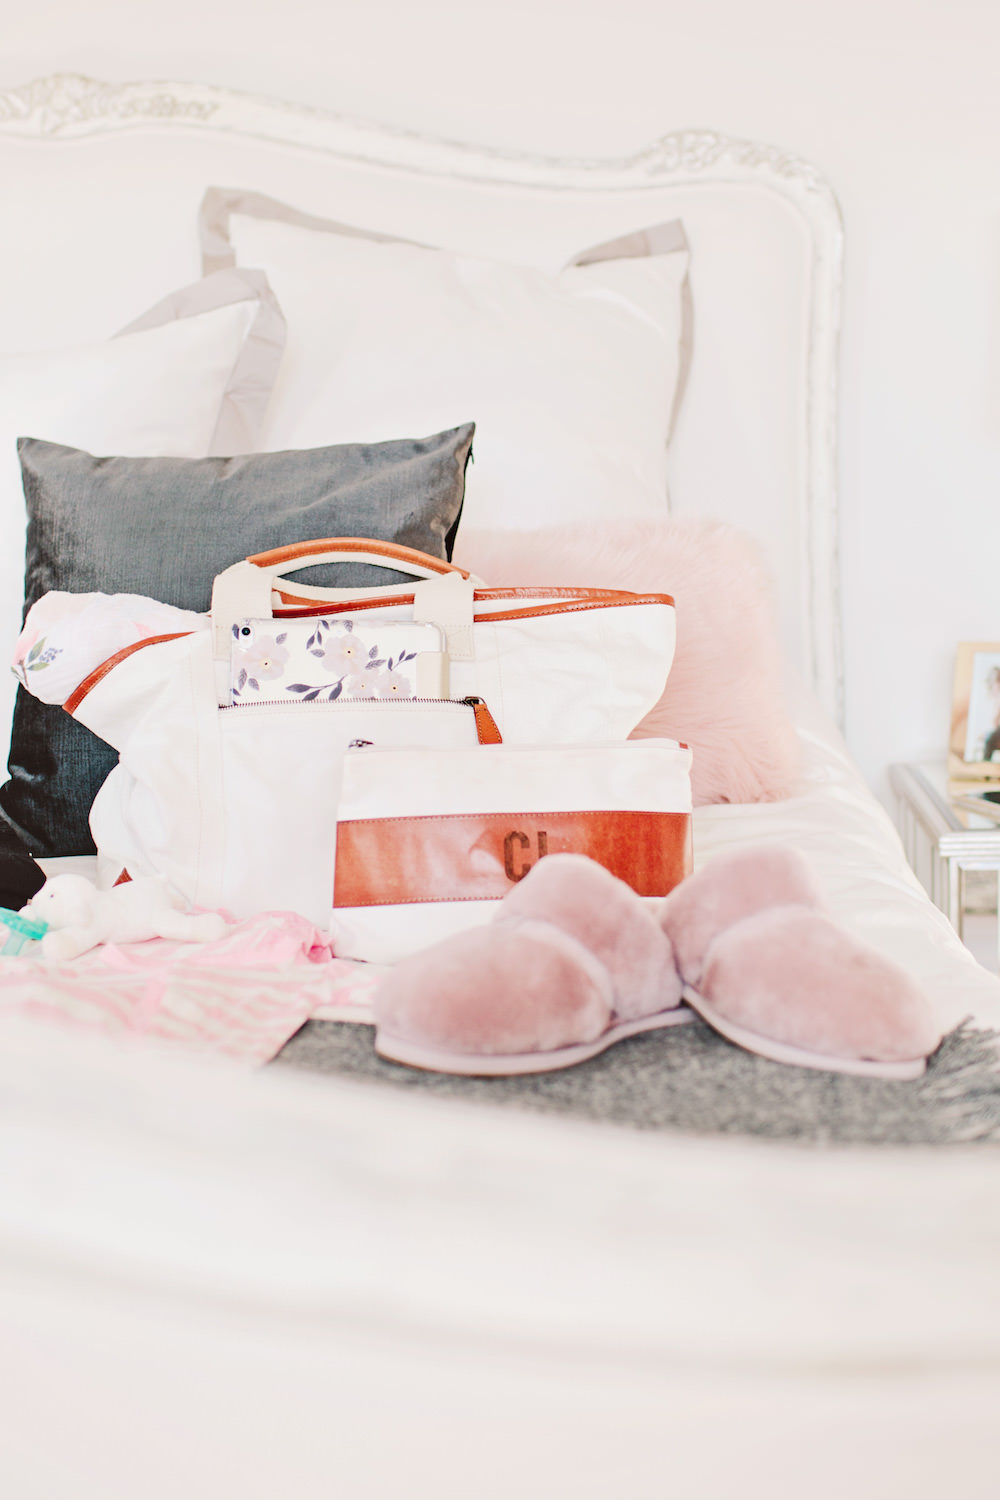 What to pack in your hospital bag for labor and delivery for mama and baby by Dash of Darling